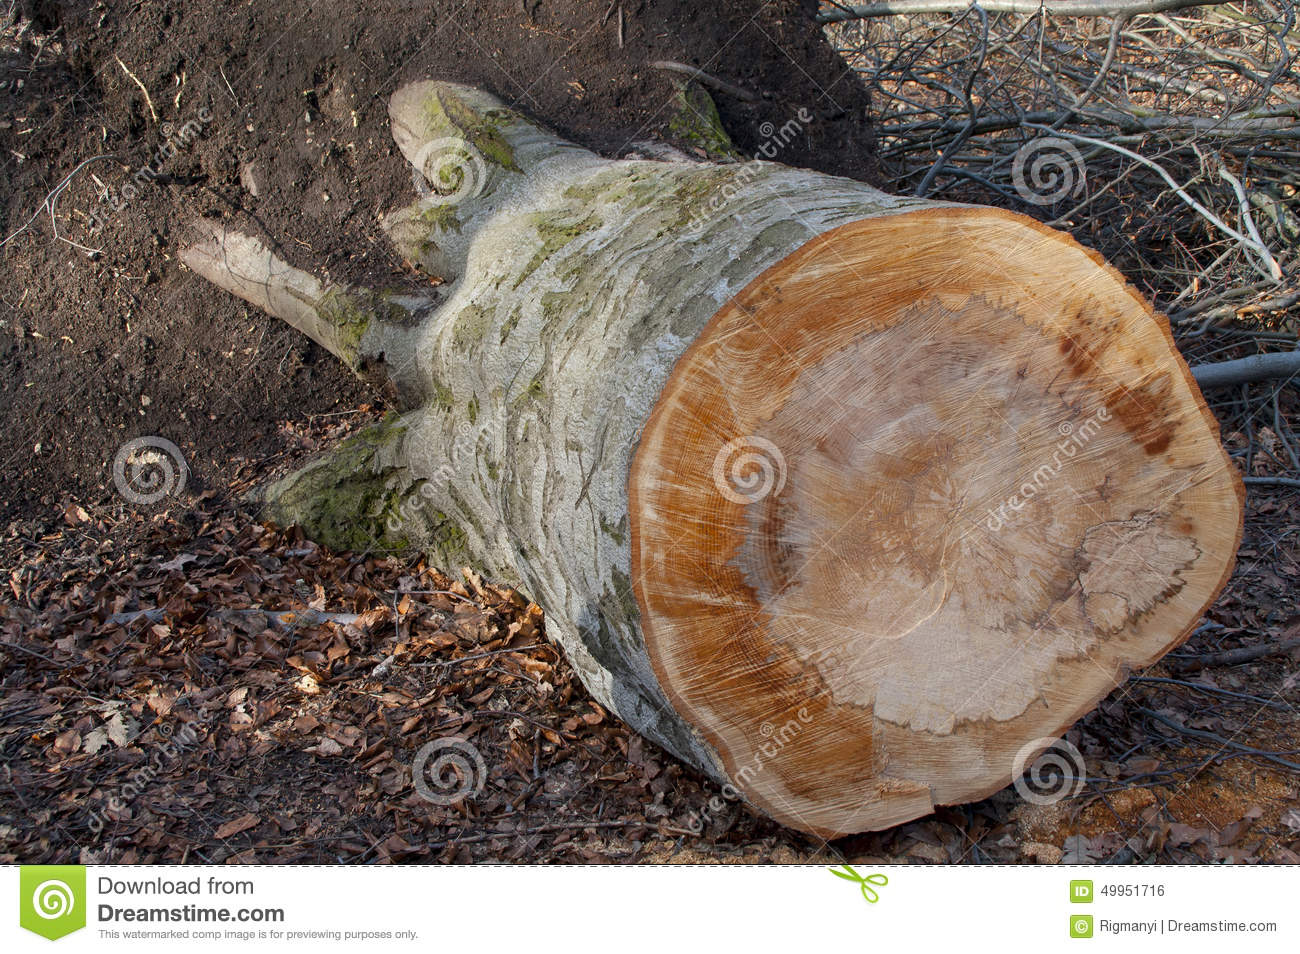 how to cut up fallen tree